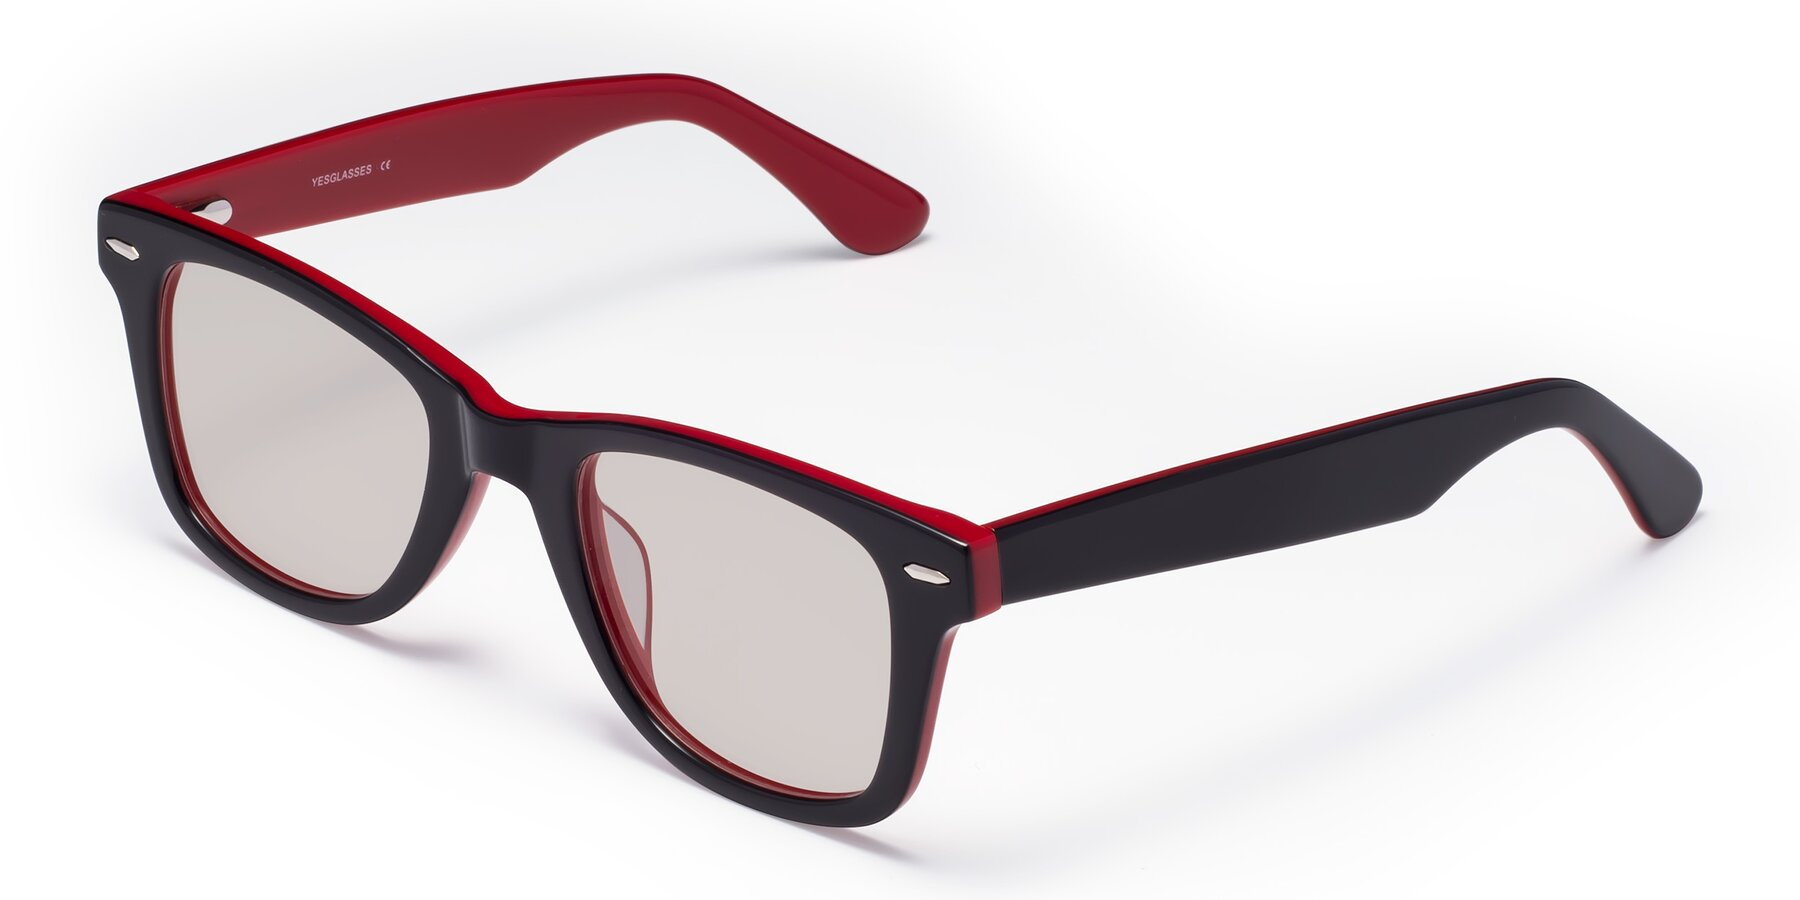 Angle of Rocky in Black-Wine with Light Brown Tinted Lenses